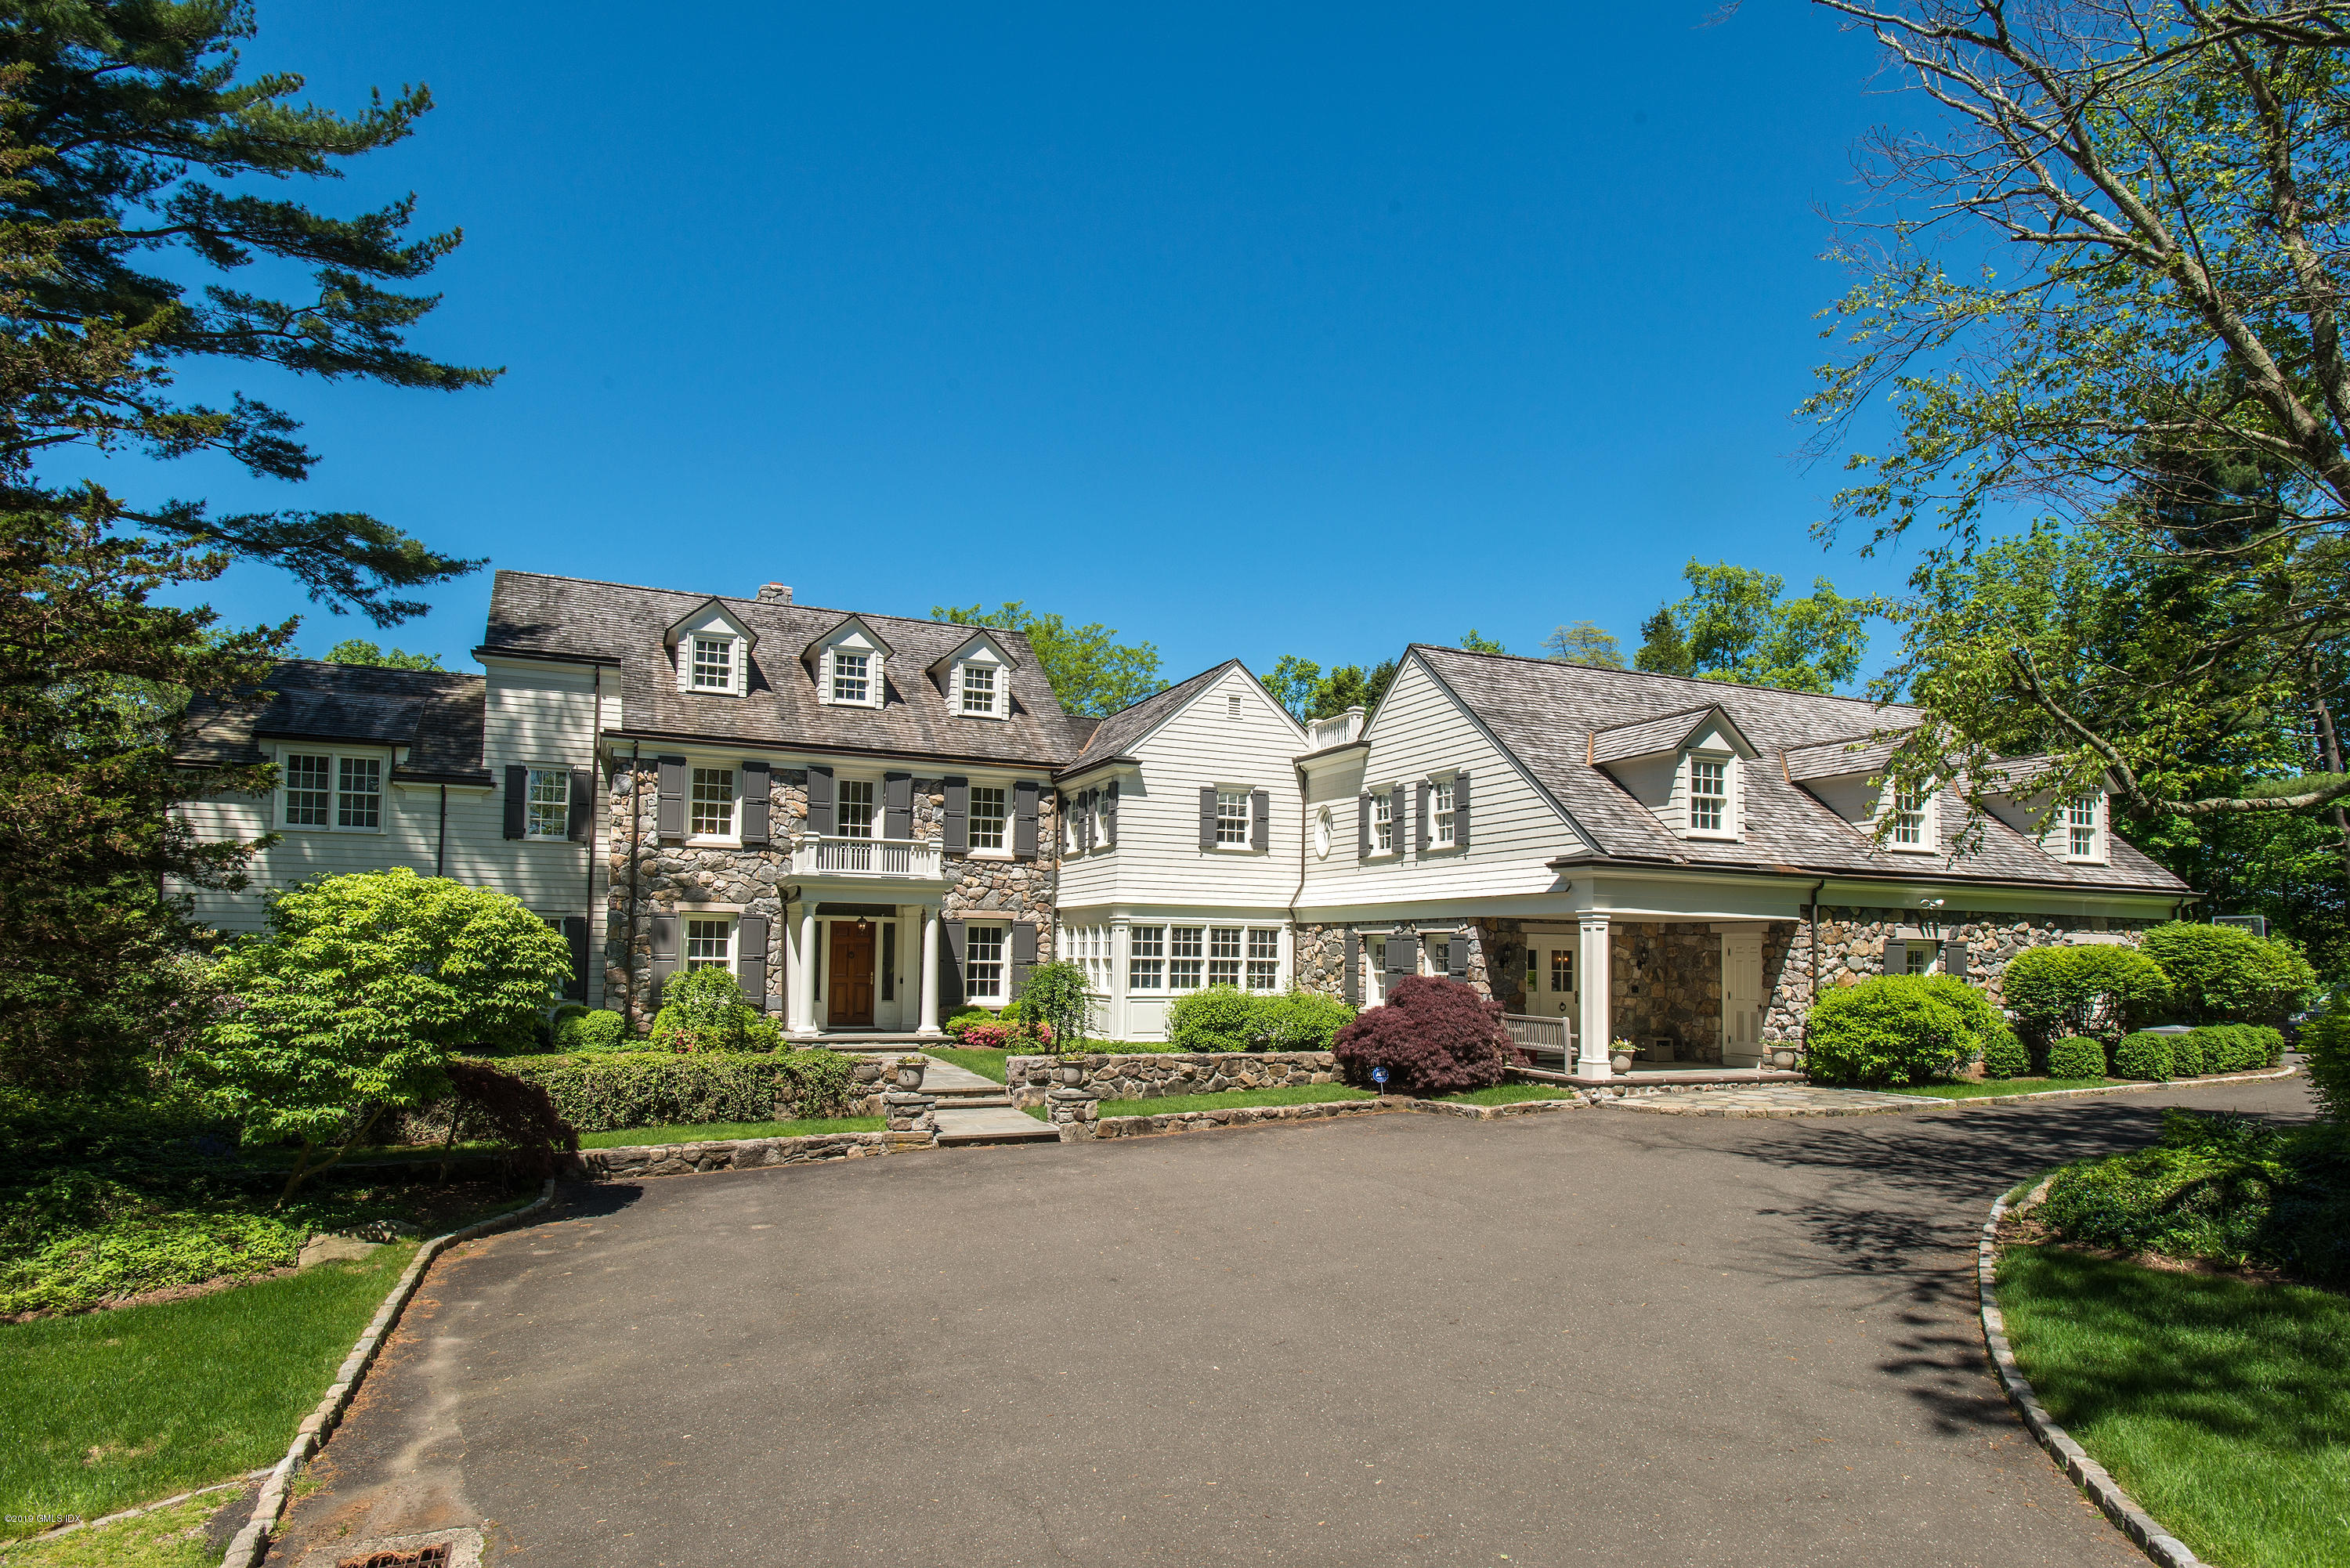 11 Brynwood Lane,Greenwich,Connecticut 06831,6 Bedrooms Bedrooms,6 BathroomsBathrooms,Single family,Brynwood,106856